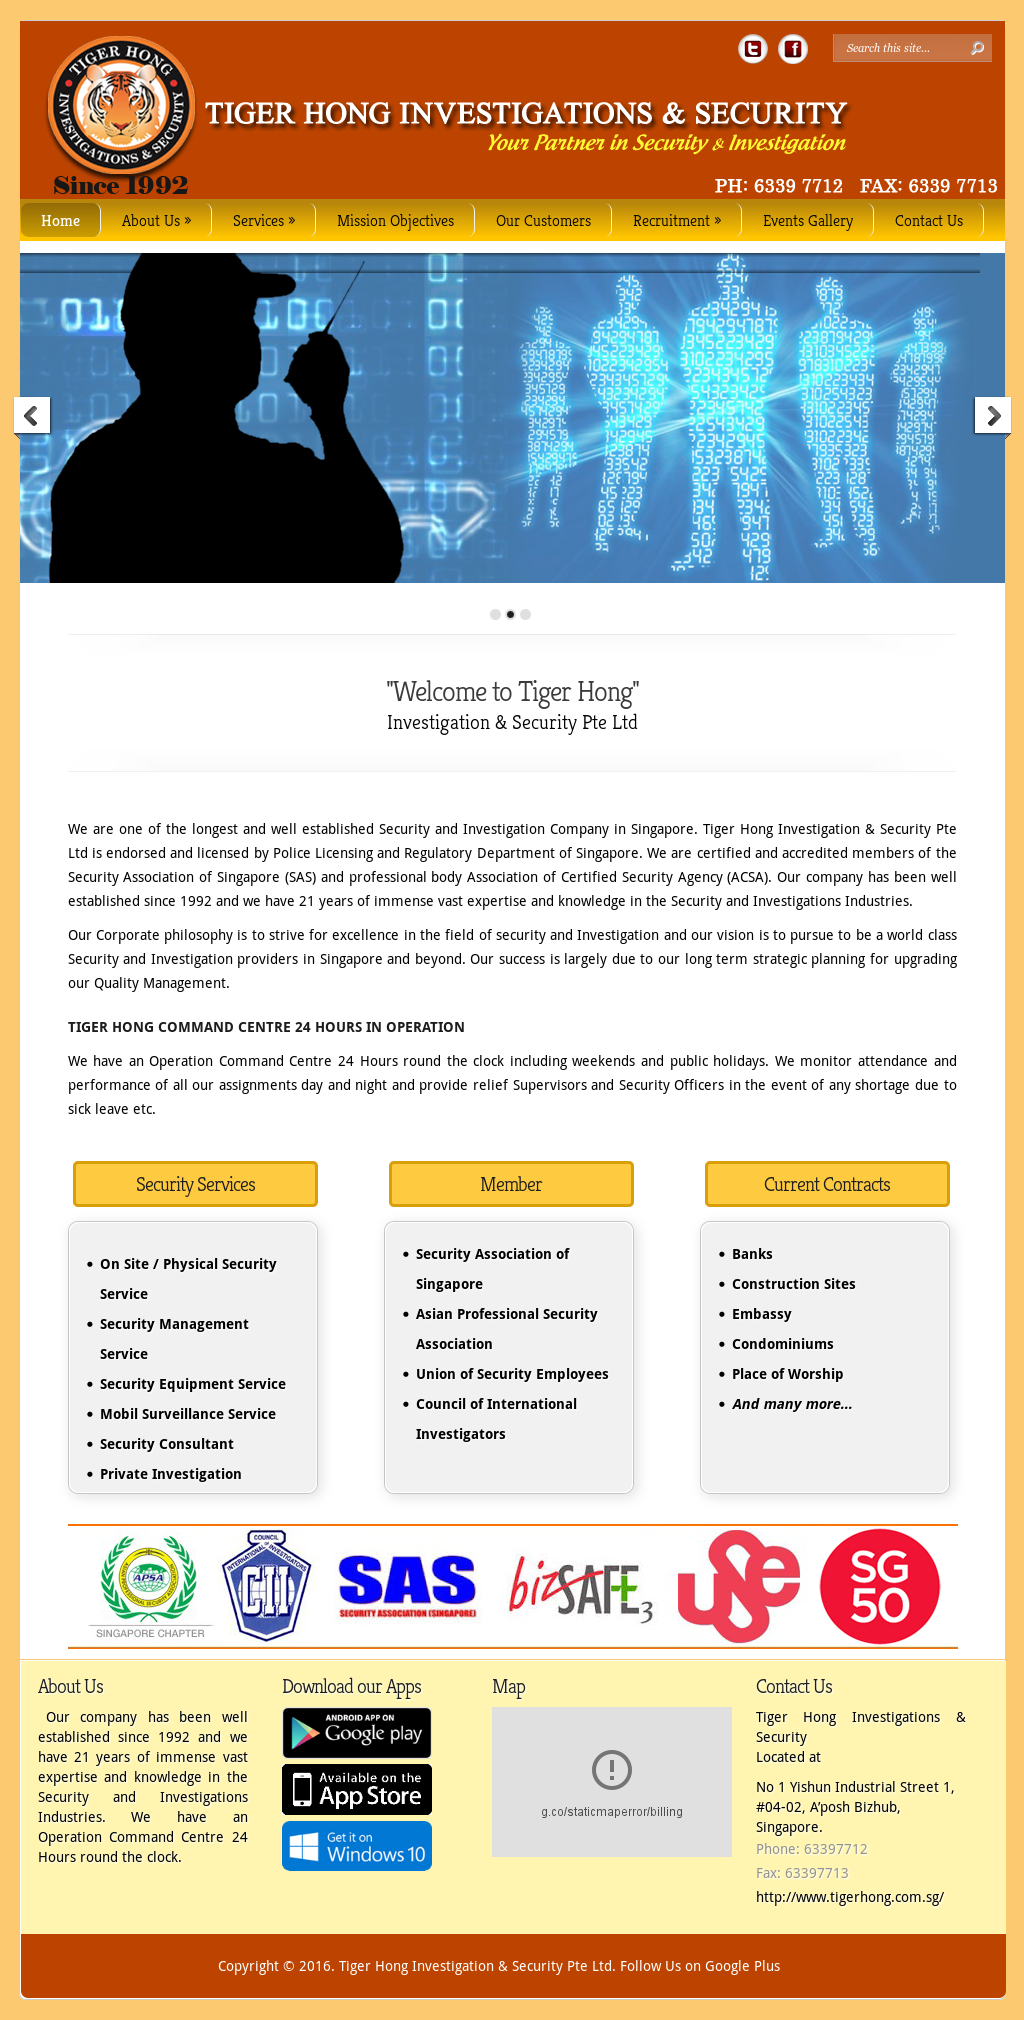 Tiger Hong Investigation & Security Competitors, Revenue and